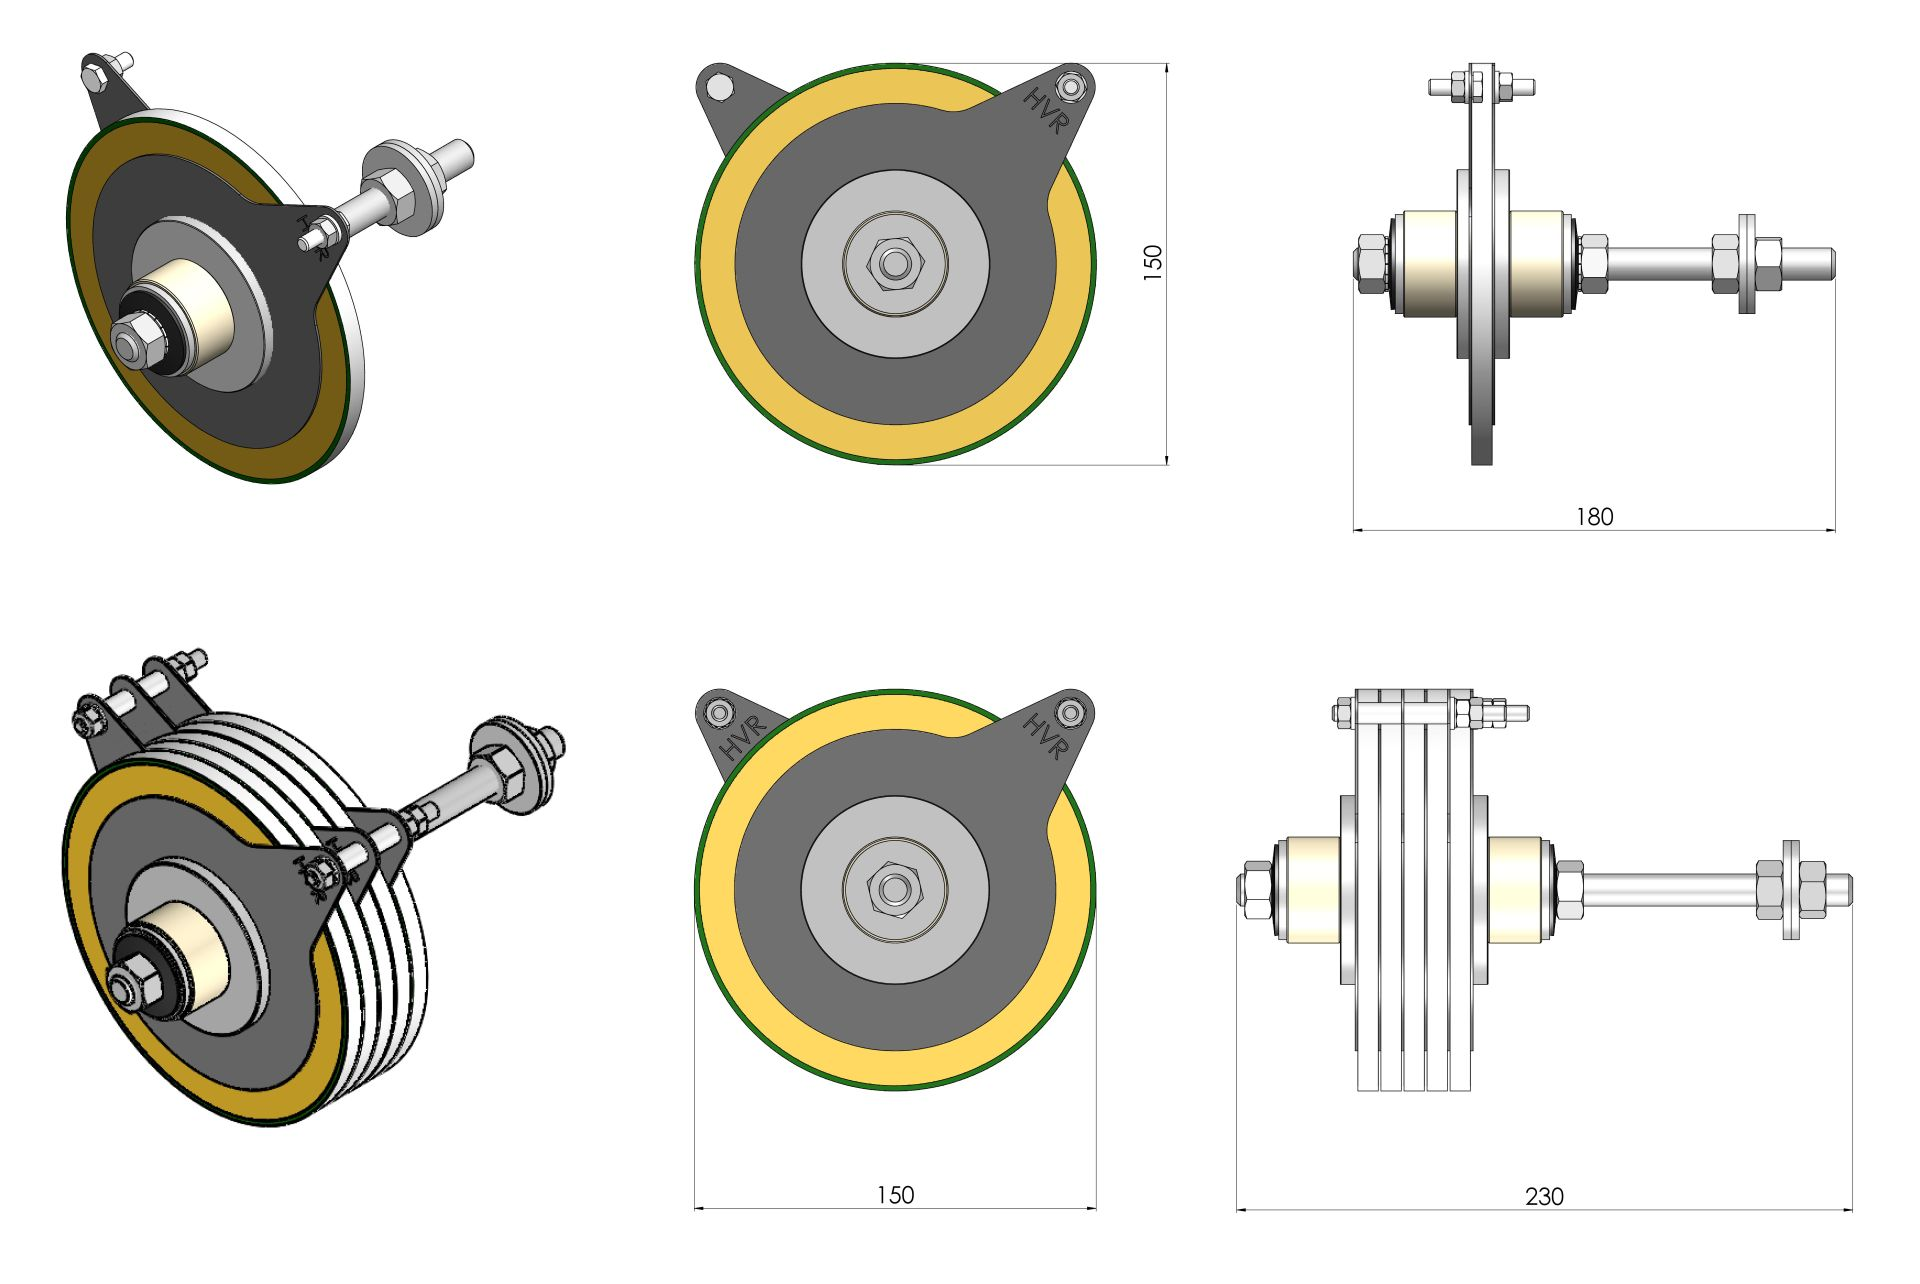 150mm Example Drawings of Protection for Lifting Magnets